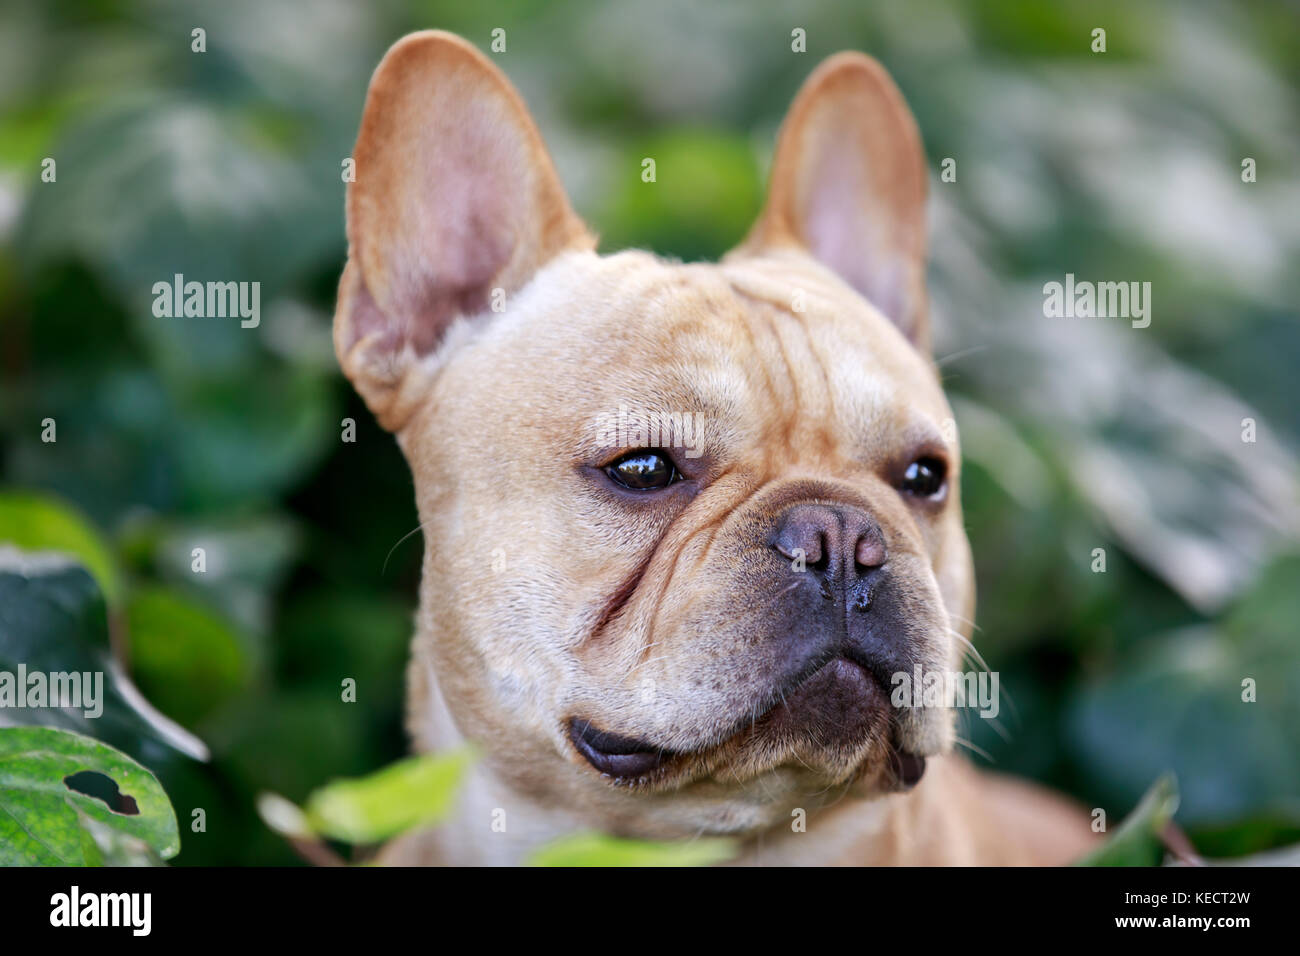 French Bulldog Head with Ivy background. - Stock Image